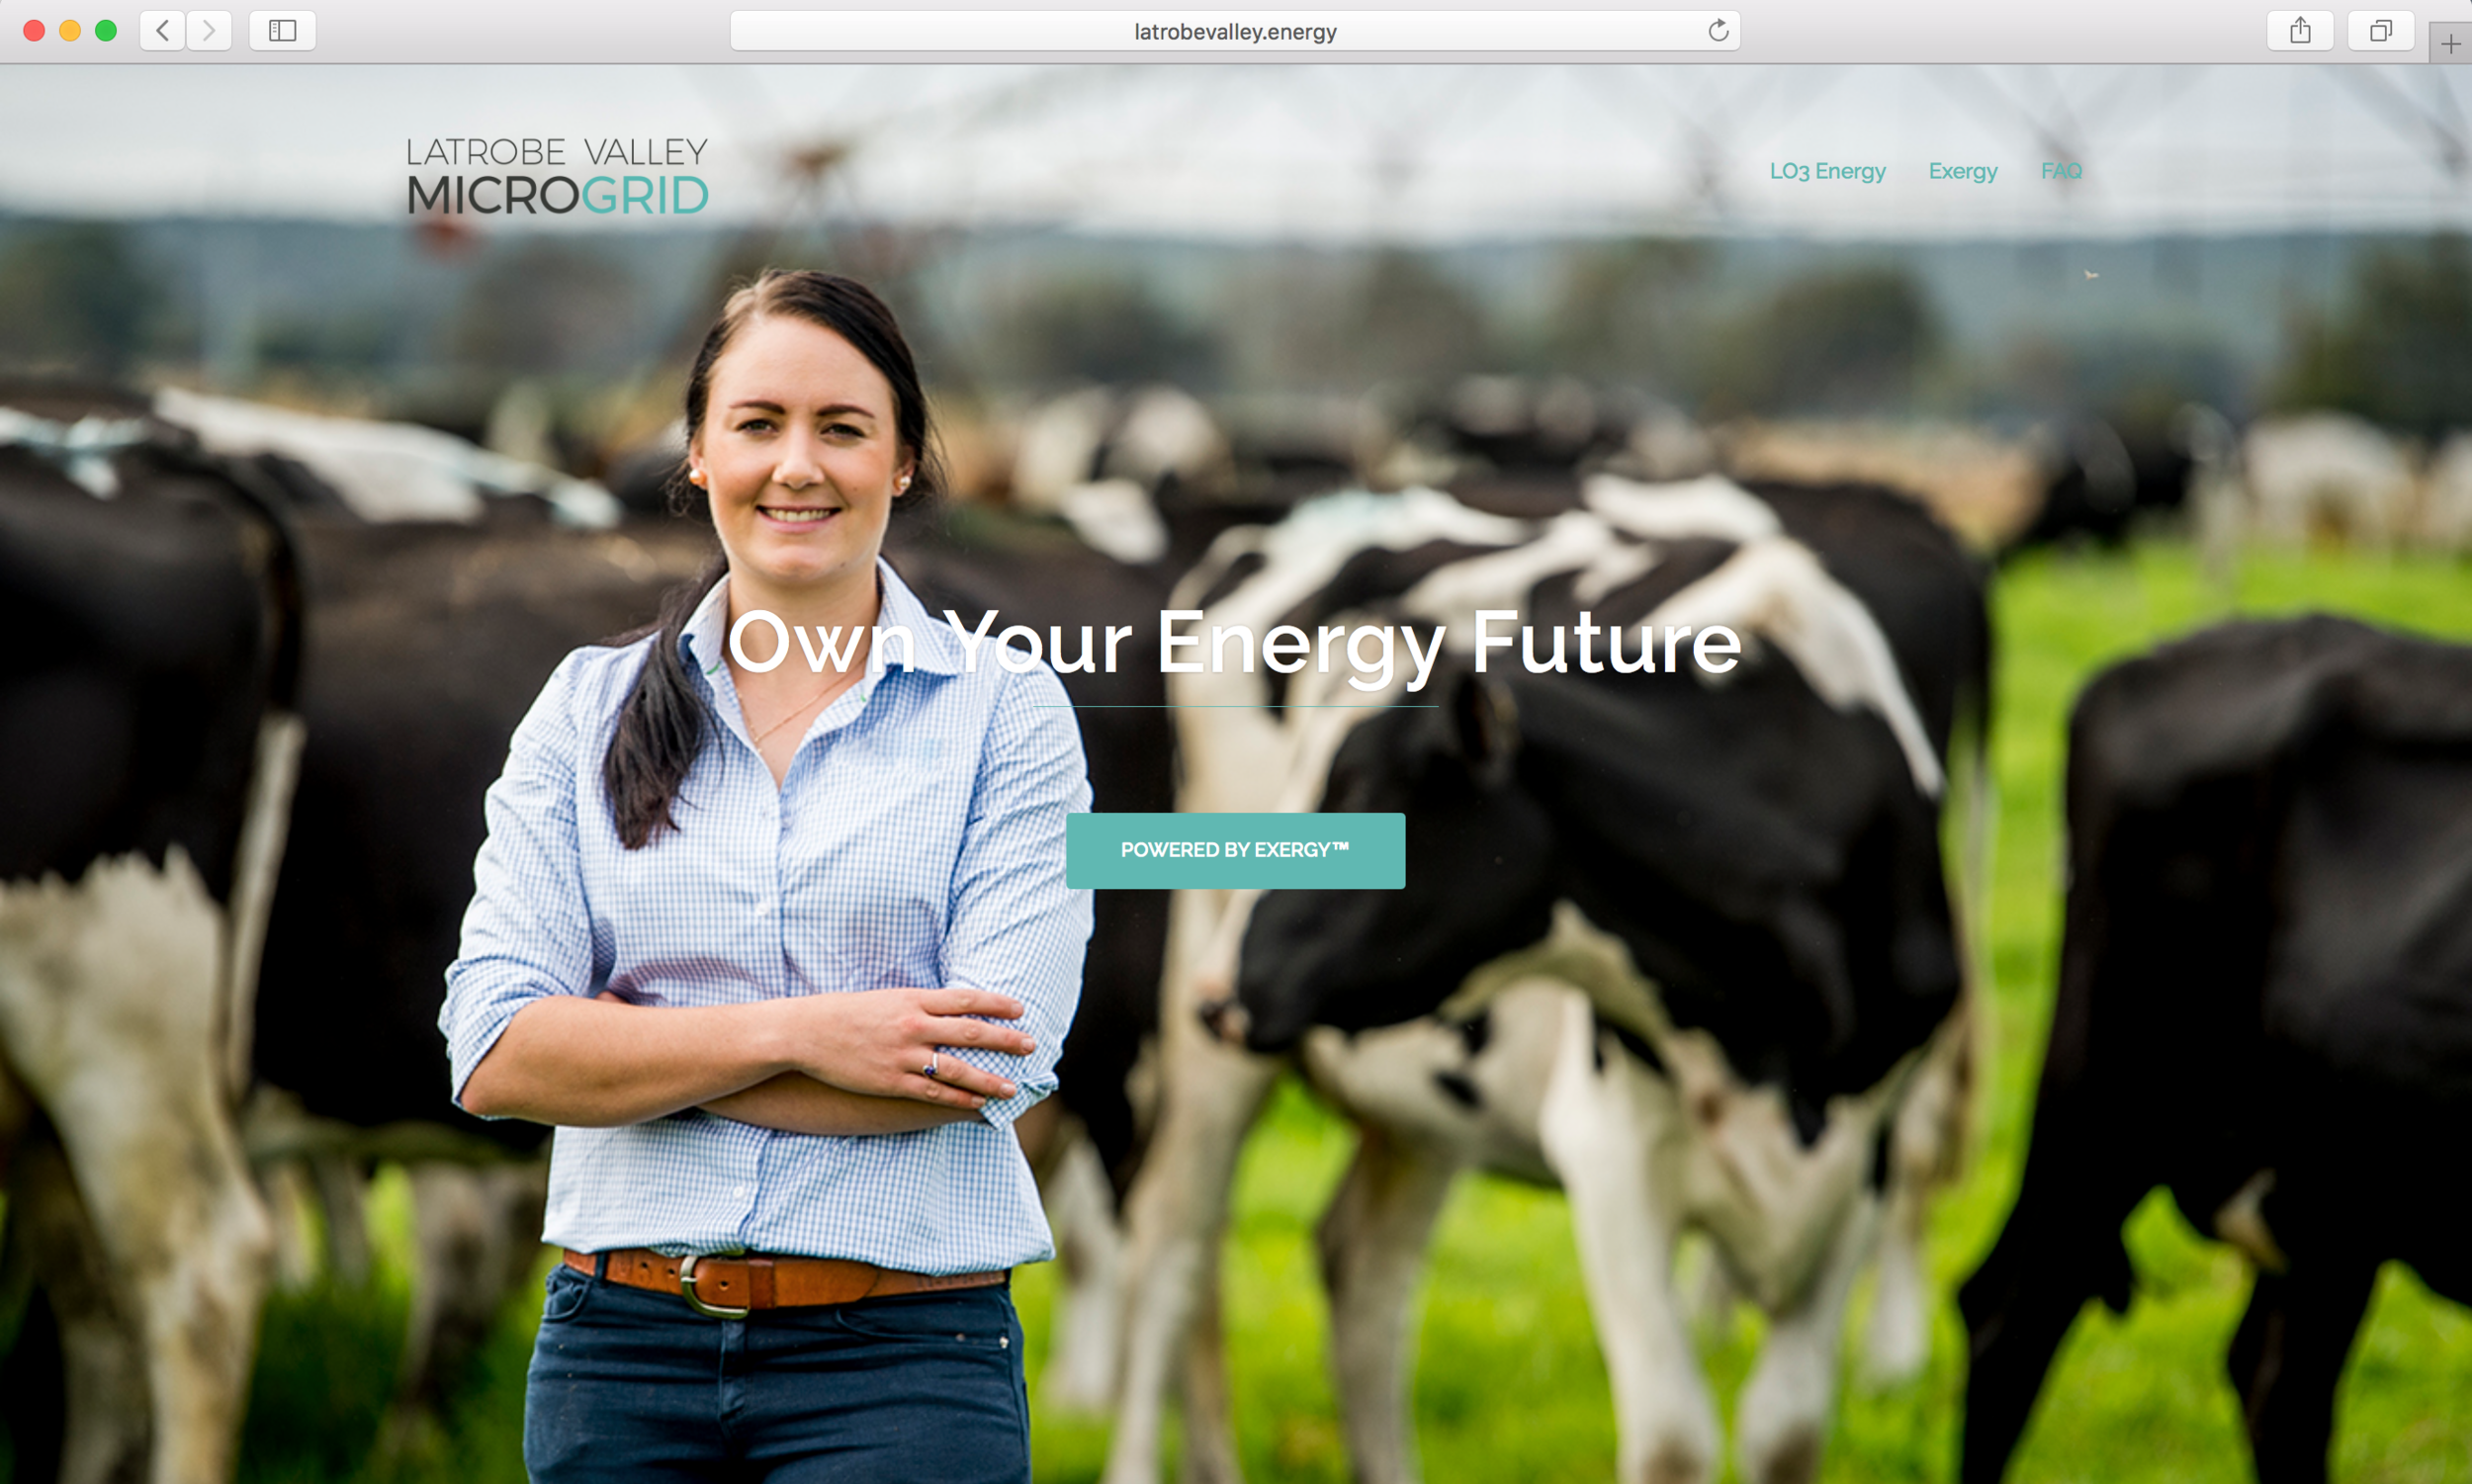 Latrobe Valley Microgrid  landing page with campaign line